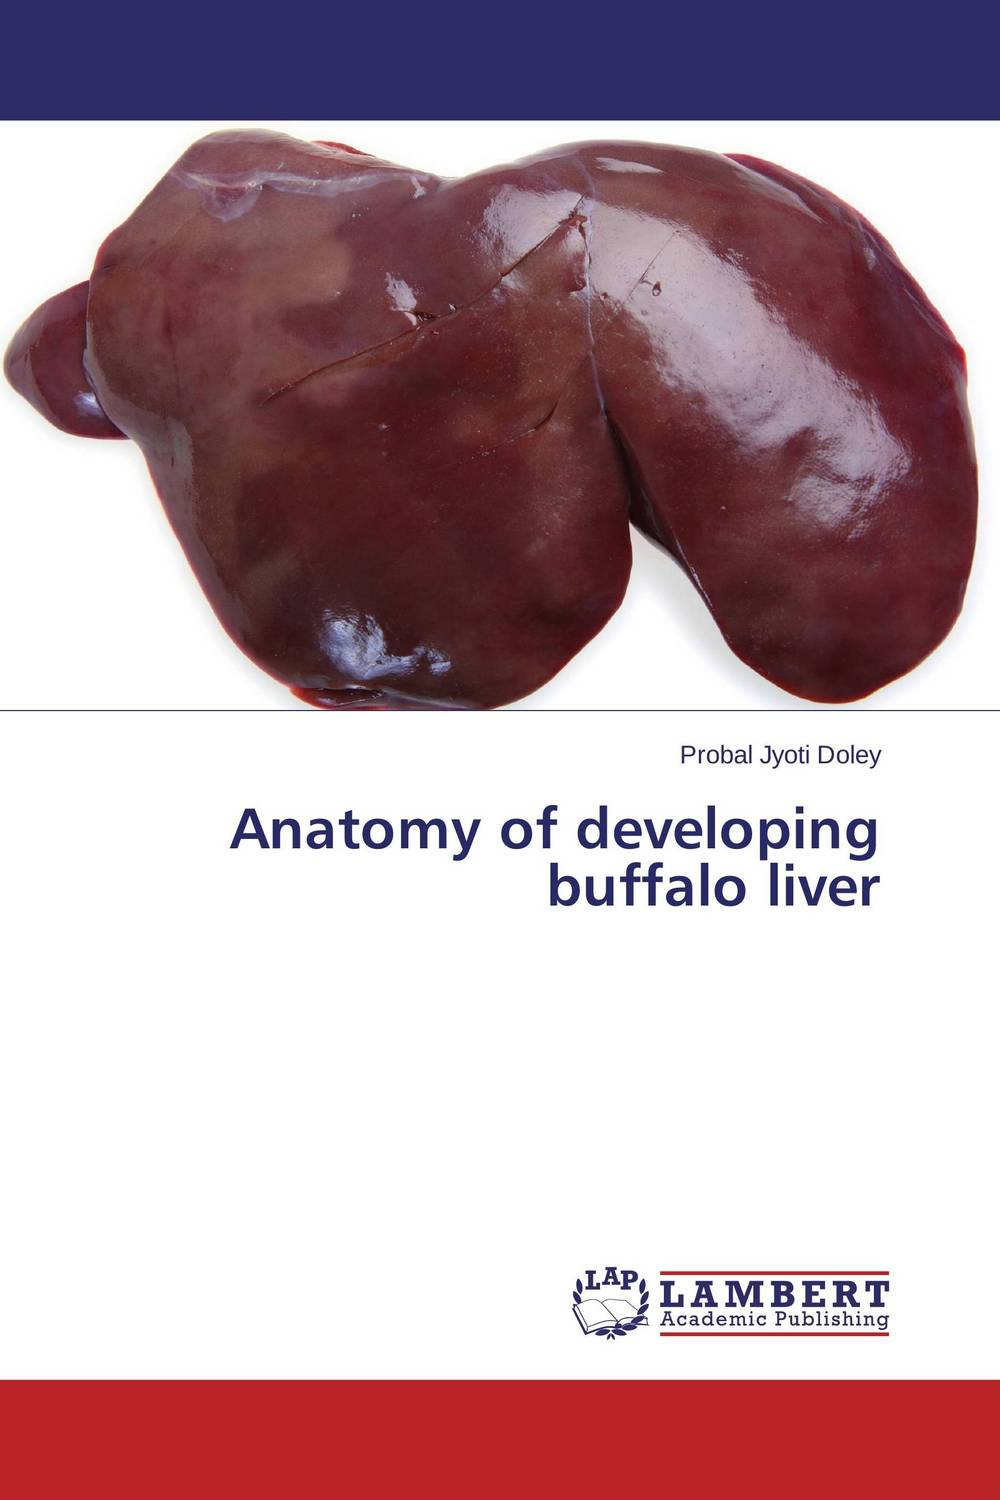 Anatomy of developing buffalo liver anatomy of a disappearance